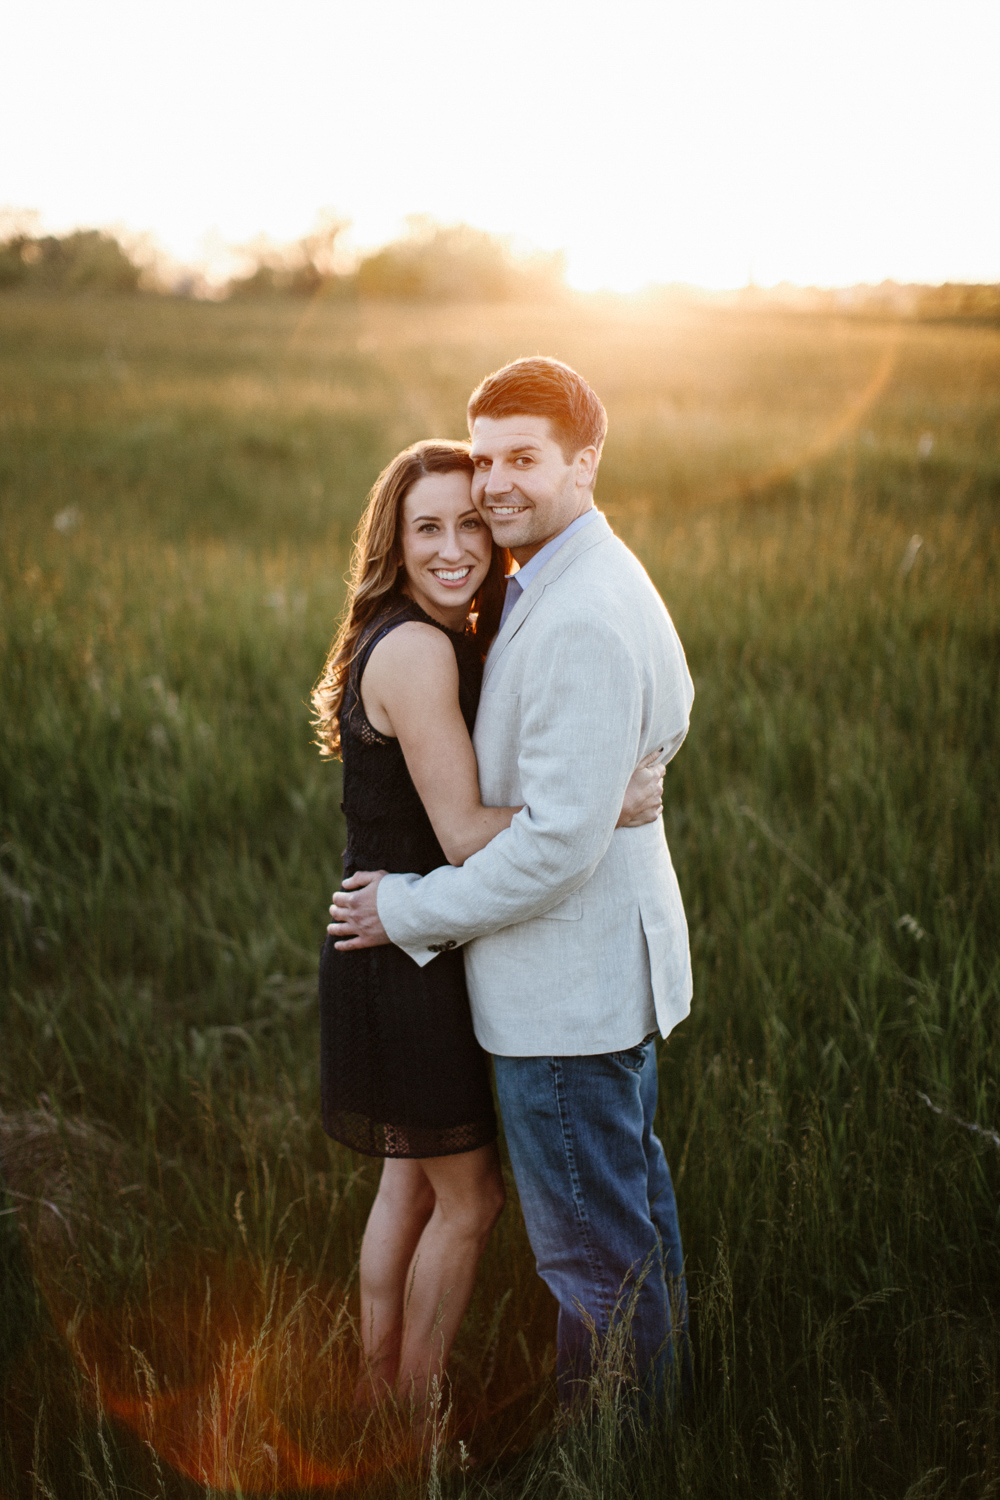 Des_Moines_Sioux_Falls_Wedding_Photographer_Renae&Adam53.jpg